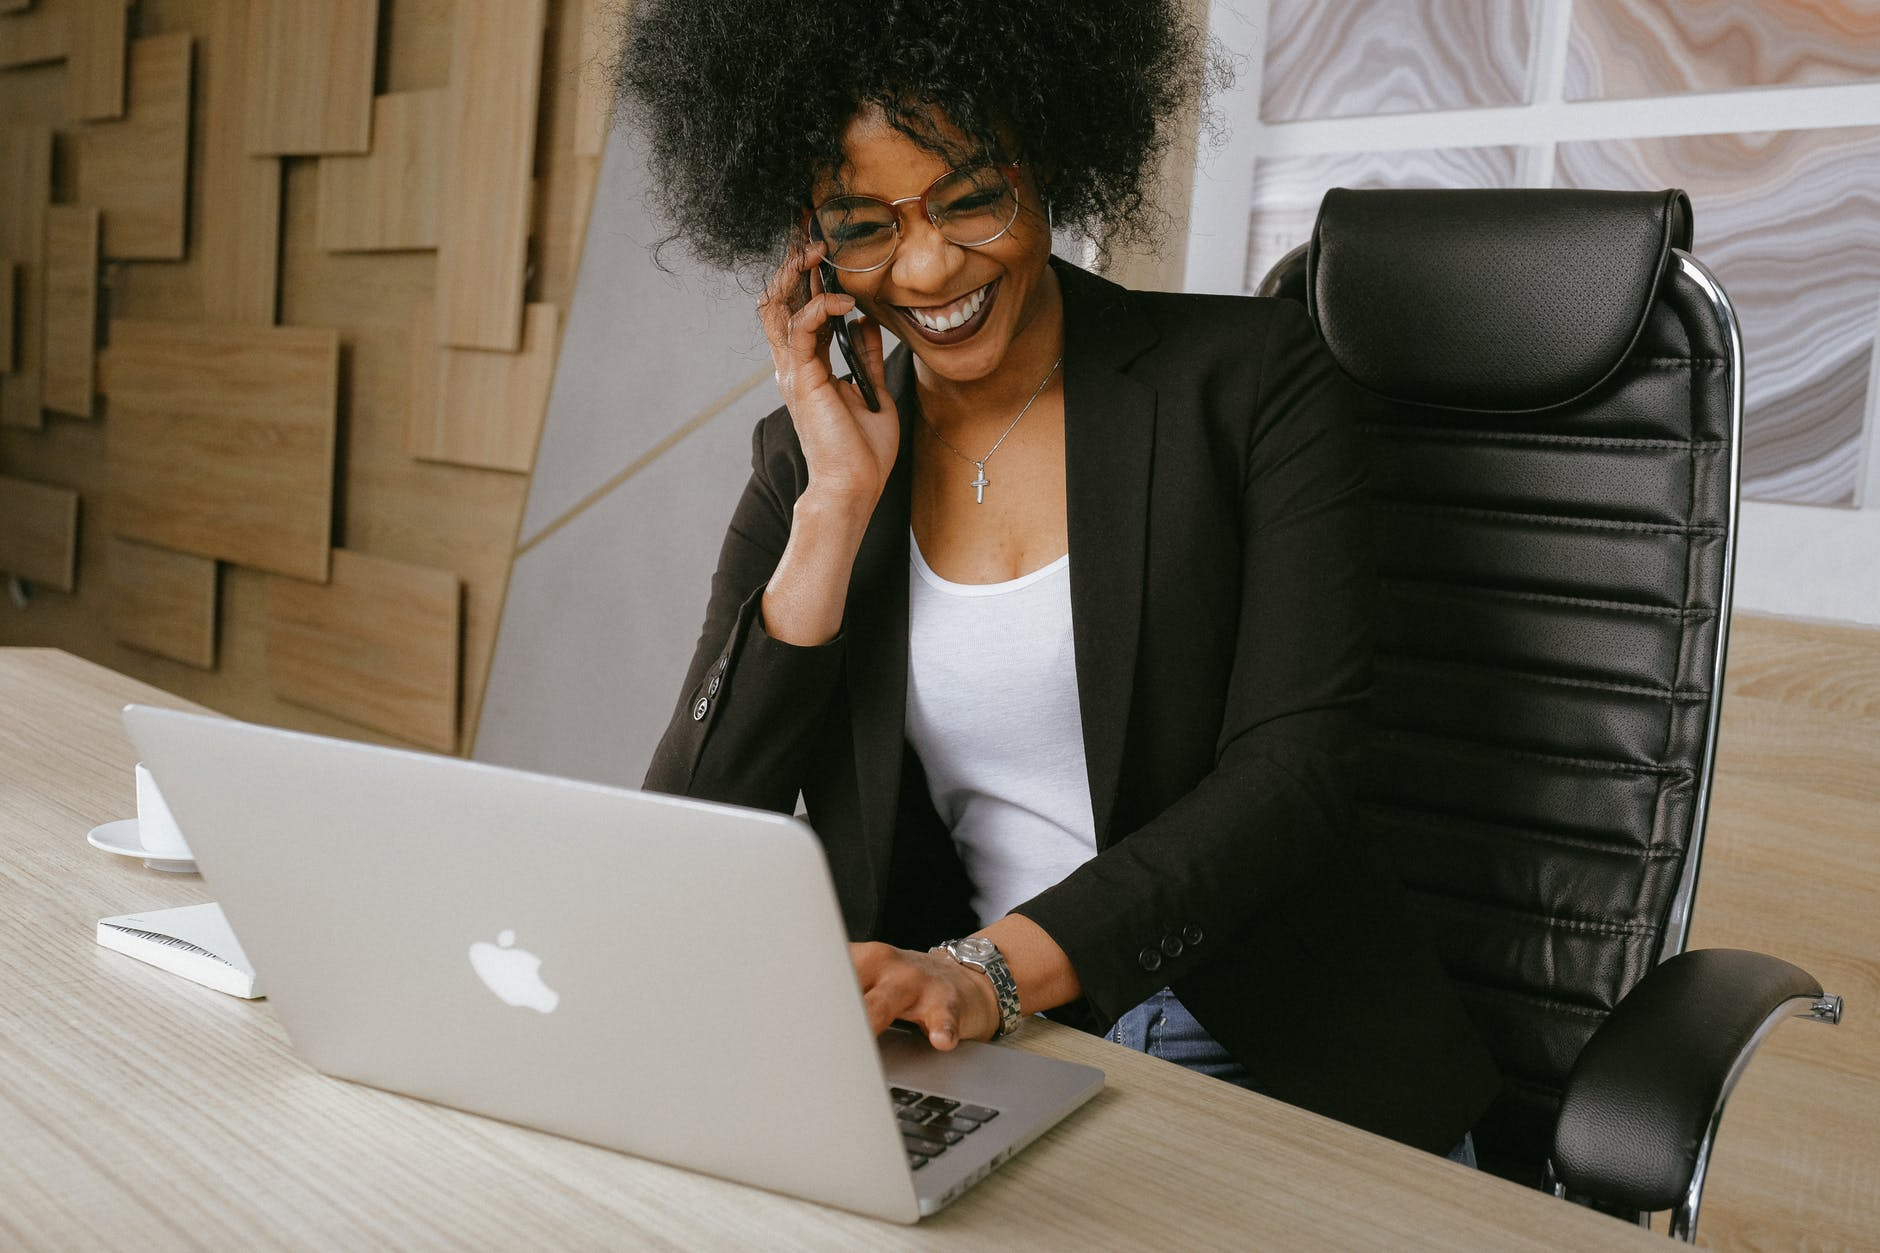 lady_successful_telemarketing_campaign